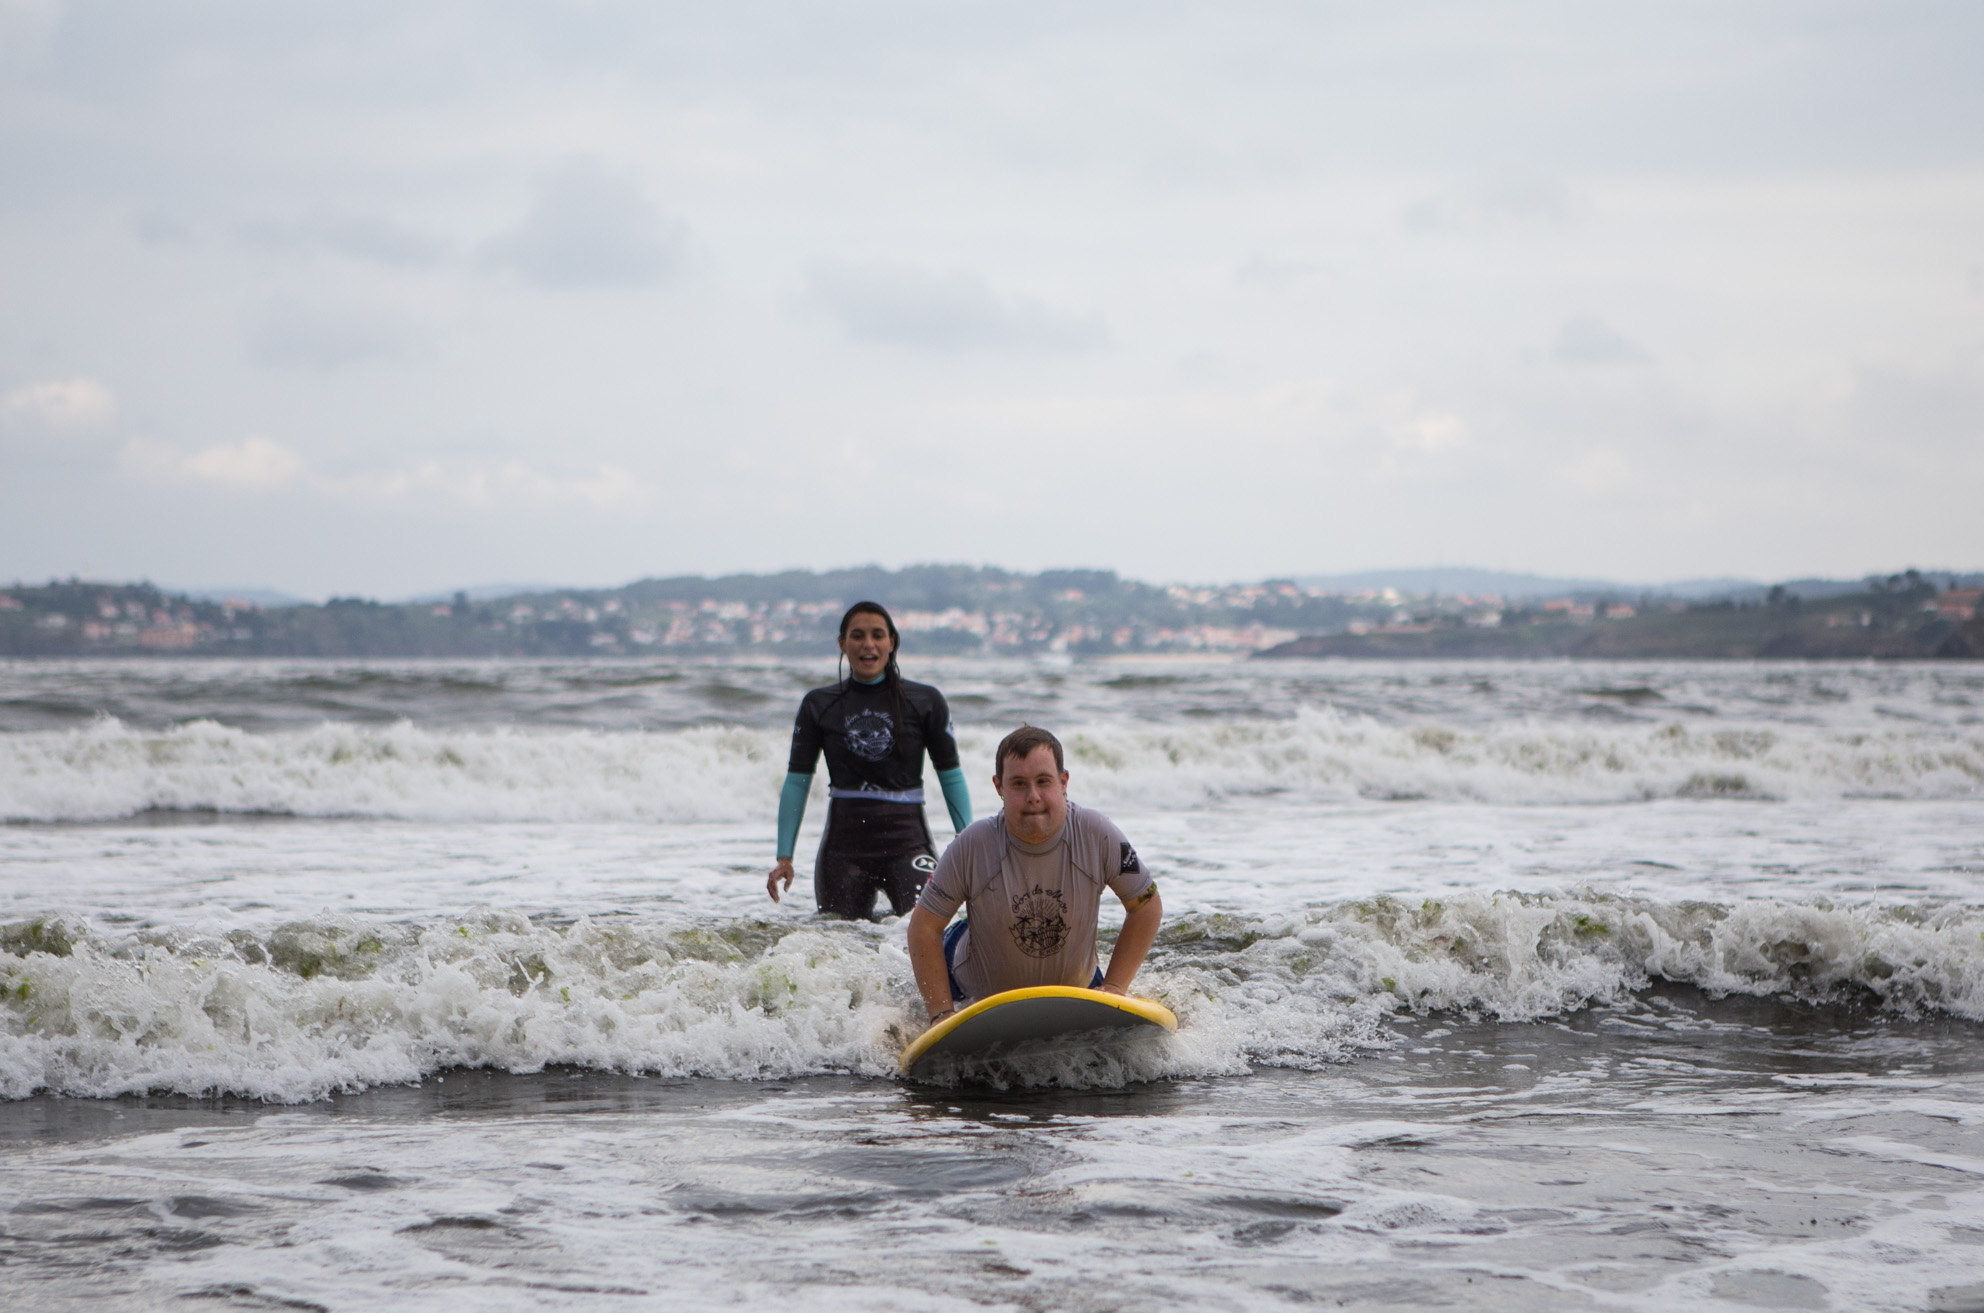 Evento surf son do mar -22.jpg